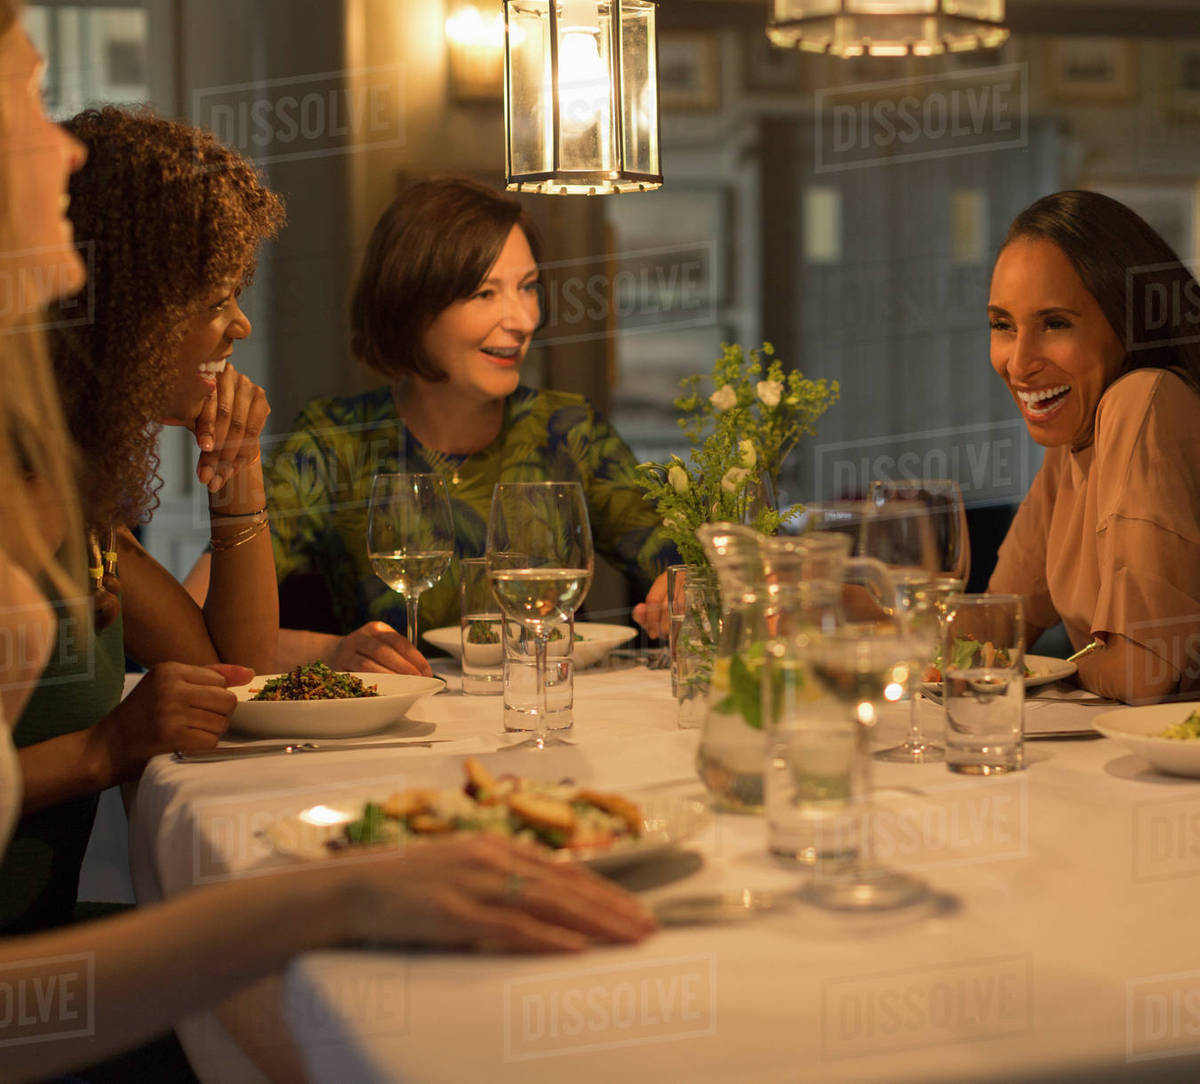 Women Friends Dining And Talking At Restaurant Table Stock Photo Dissolve